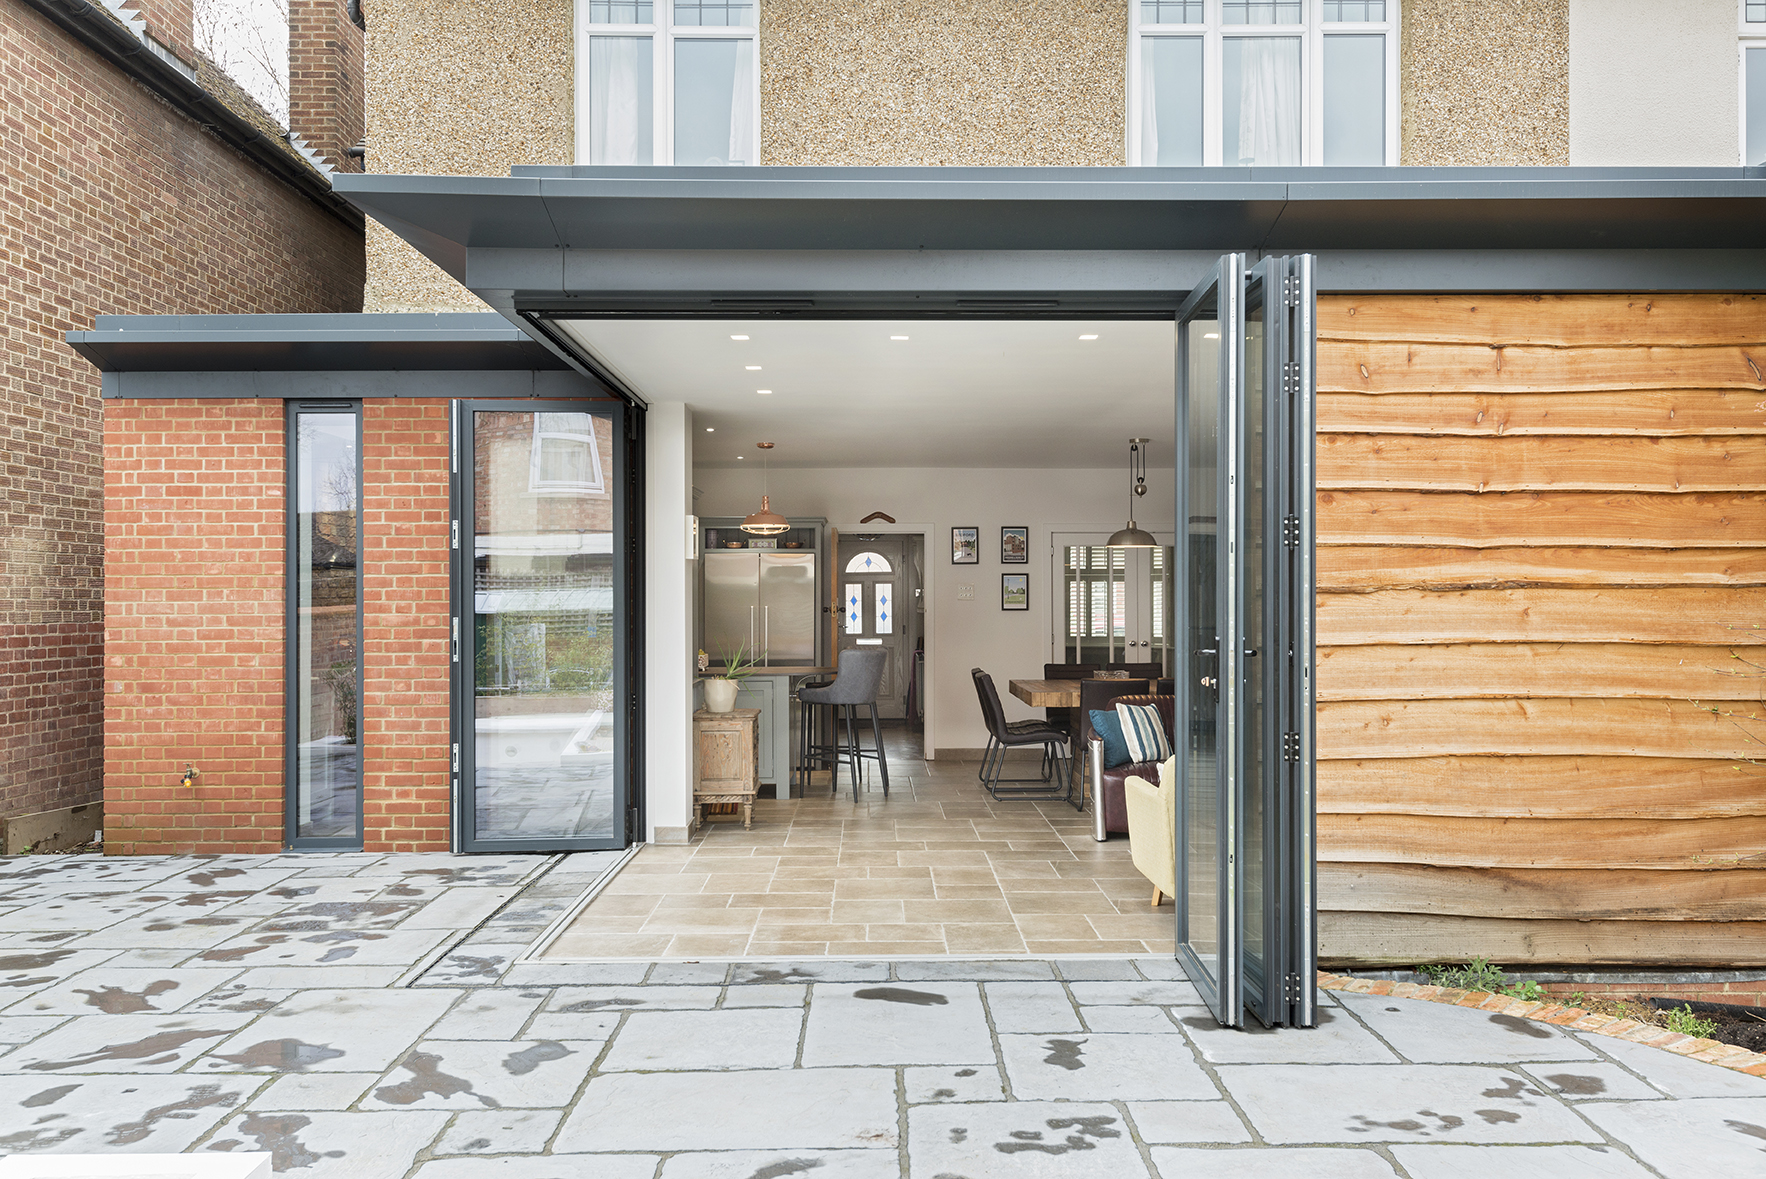 Single-storey rear extension with gravity defying cantilever for the ultimate inside/outside space